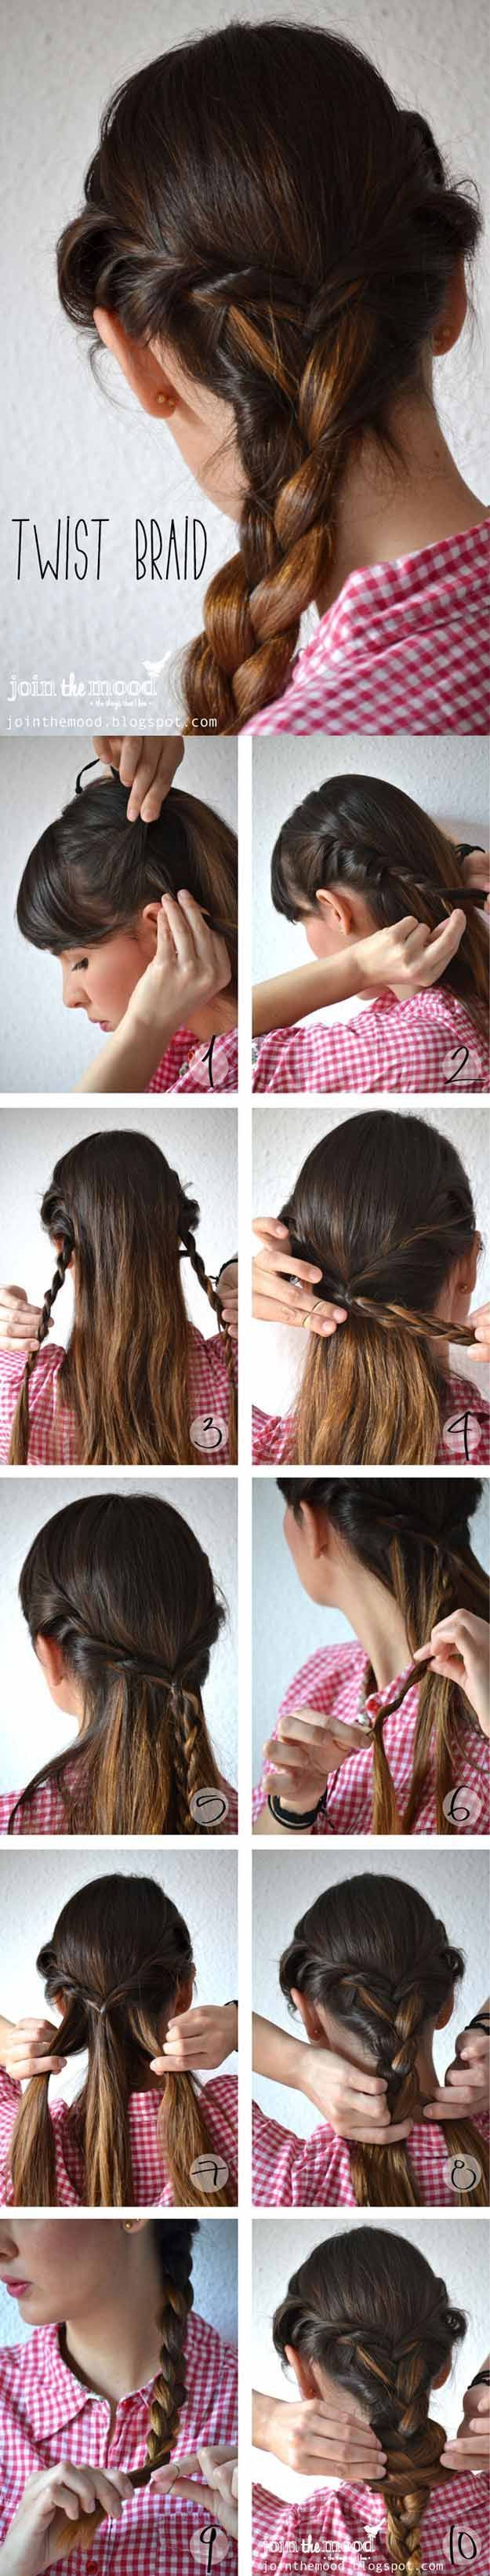 Best Hairstyles For Teens Cute Hairstyles for School Easy And